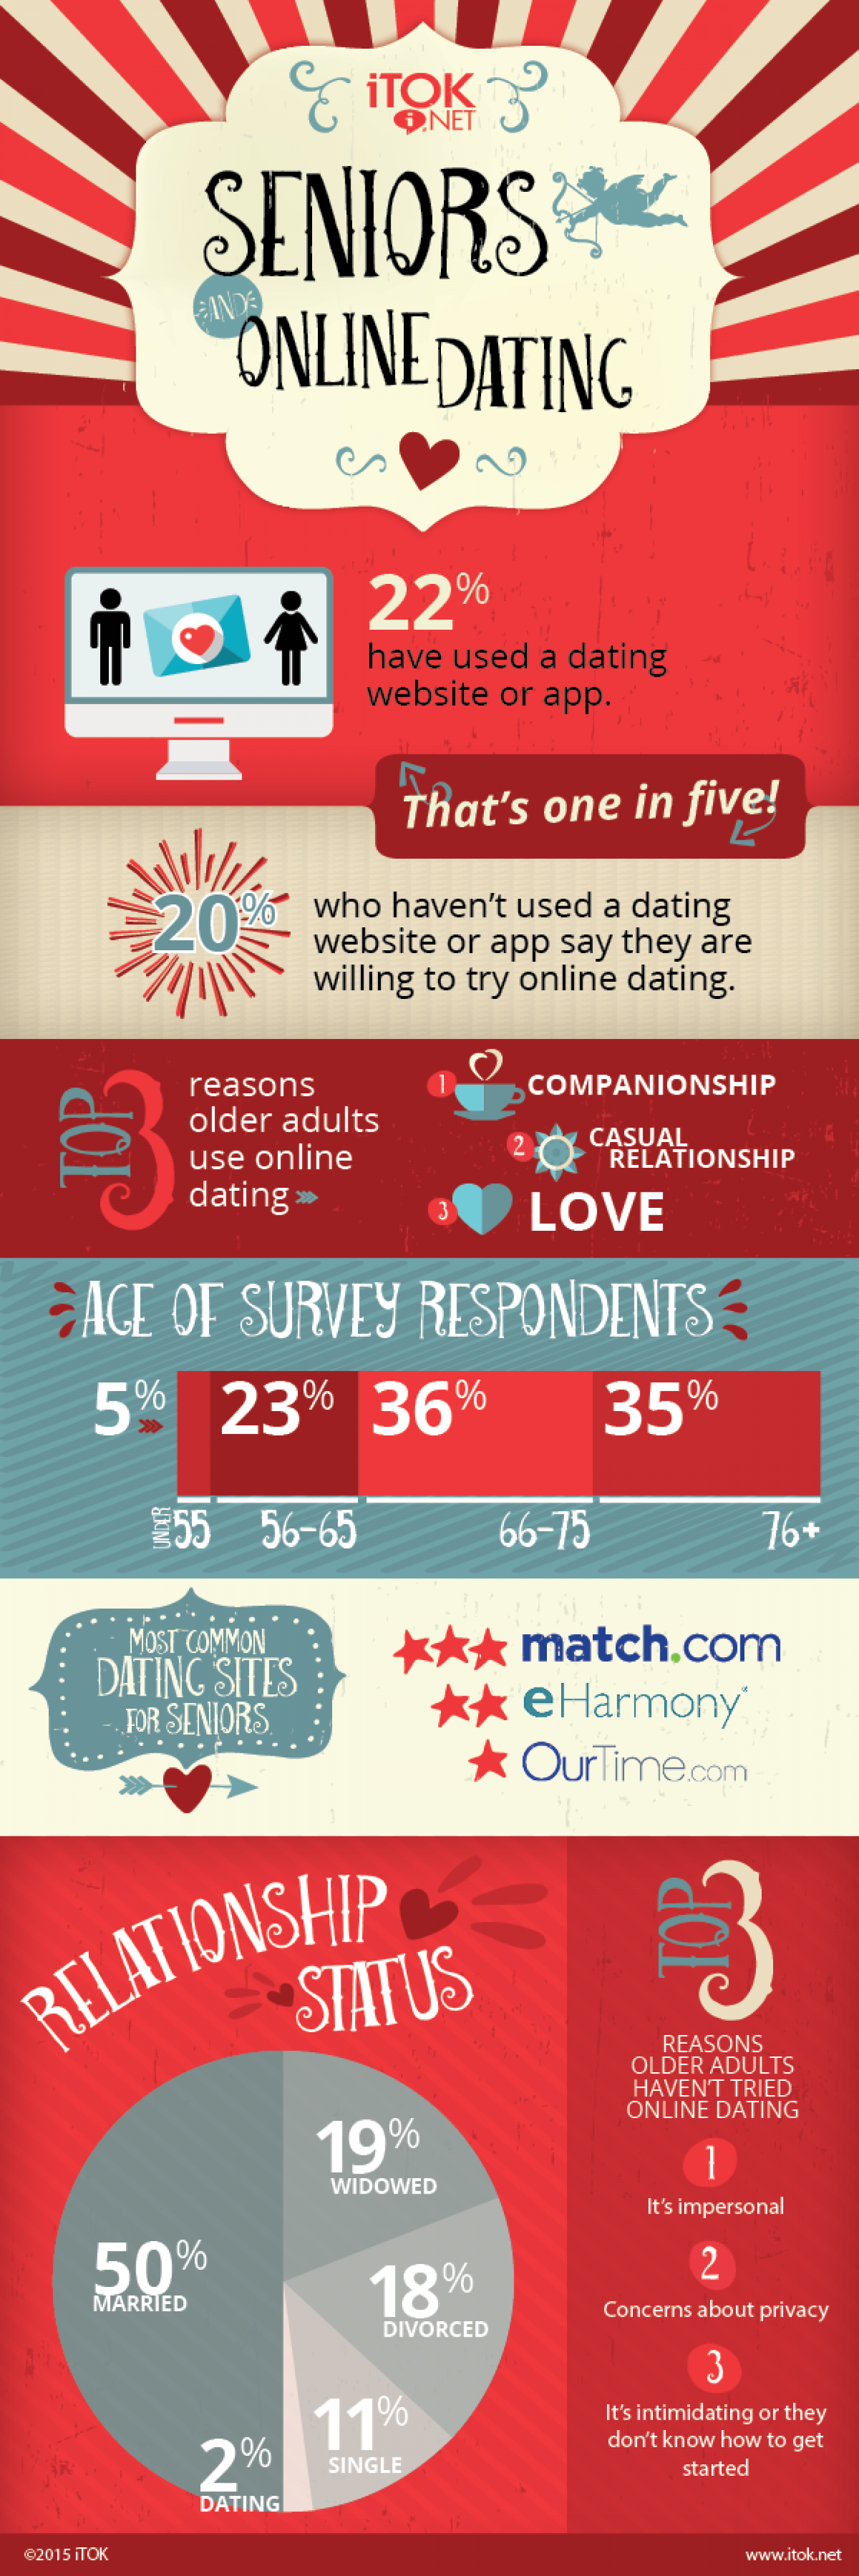 dating in the dark us relationship updates